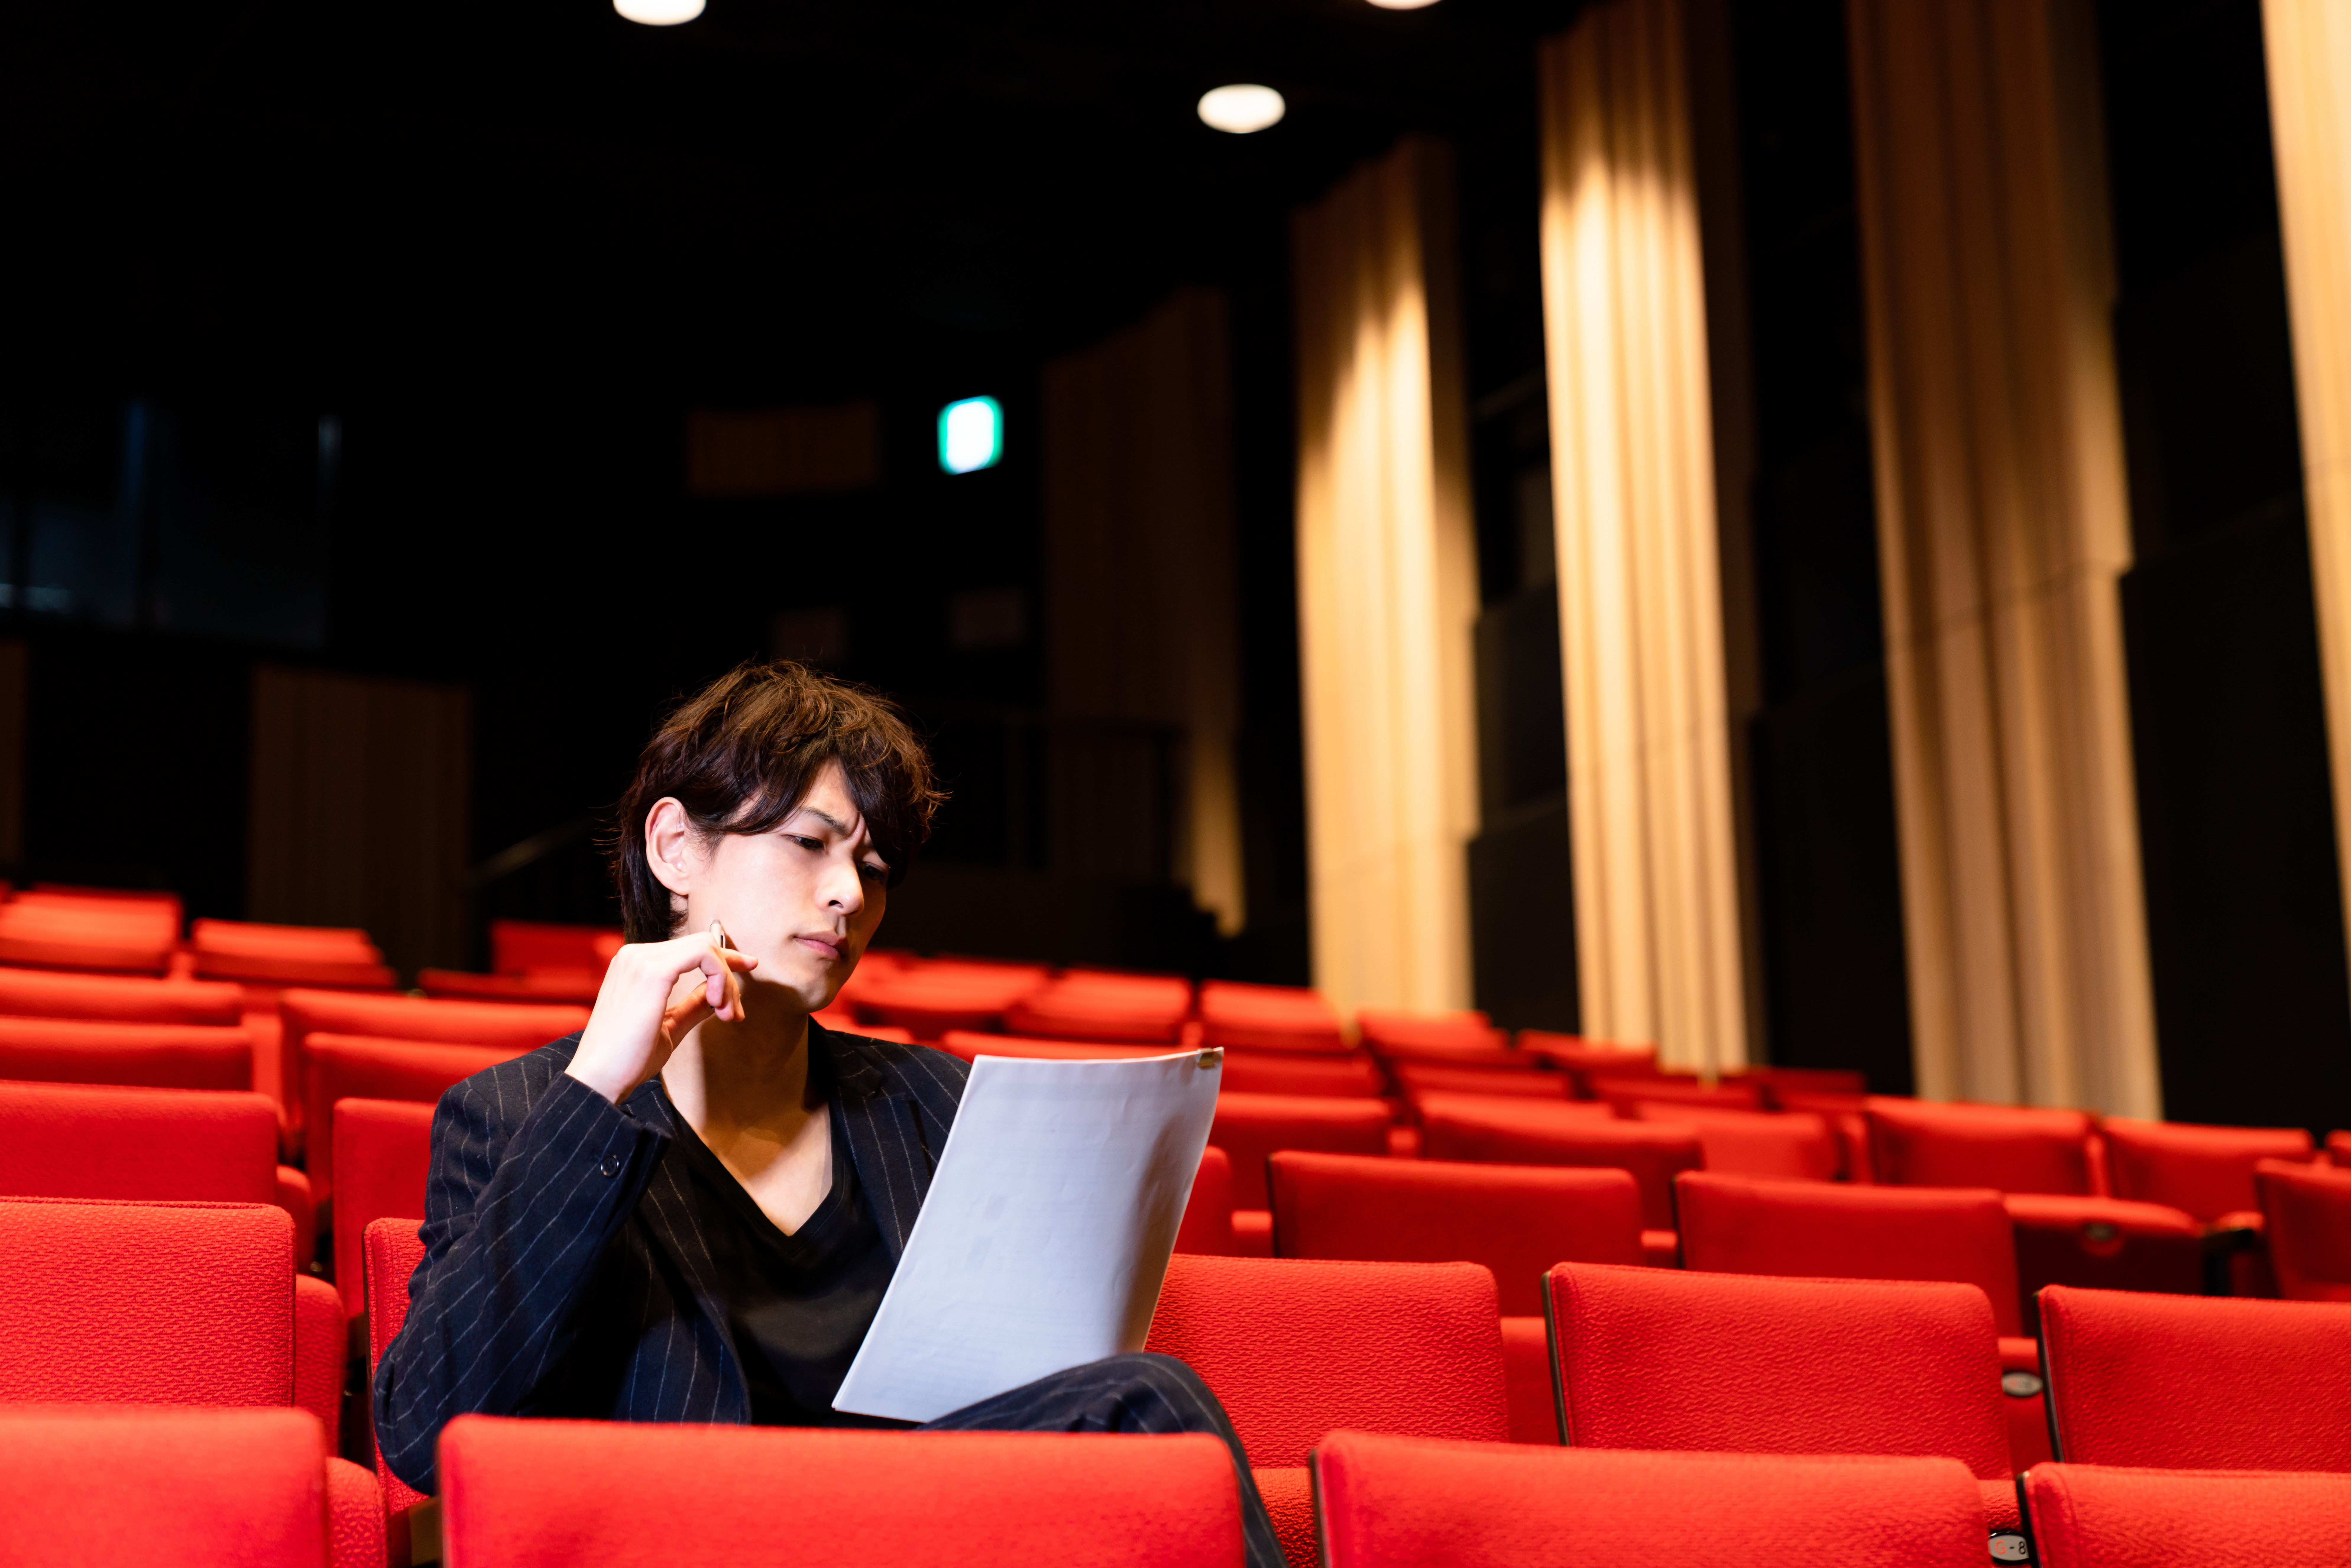 A theatre judge seated on one of the theatre seats.   Source: Shutterstock